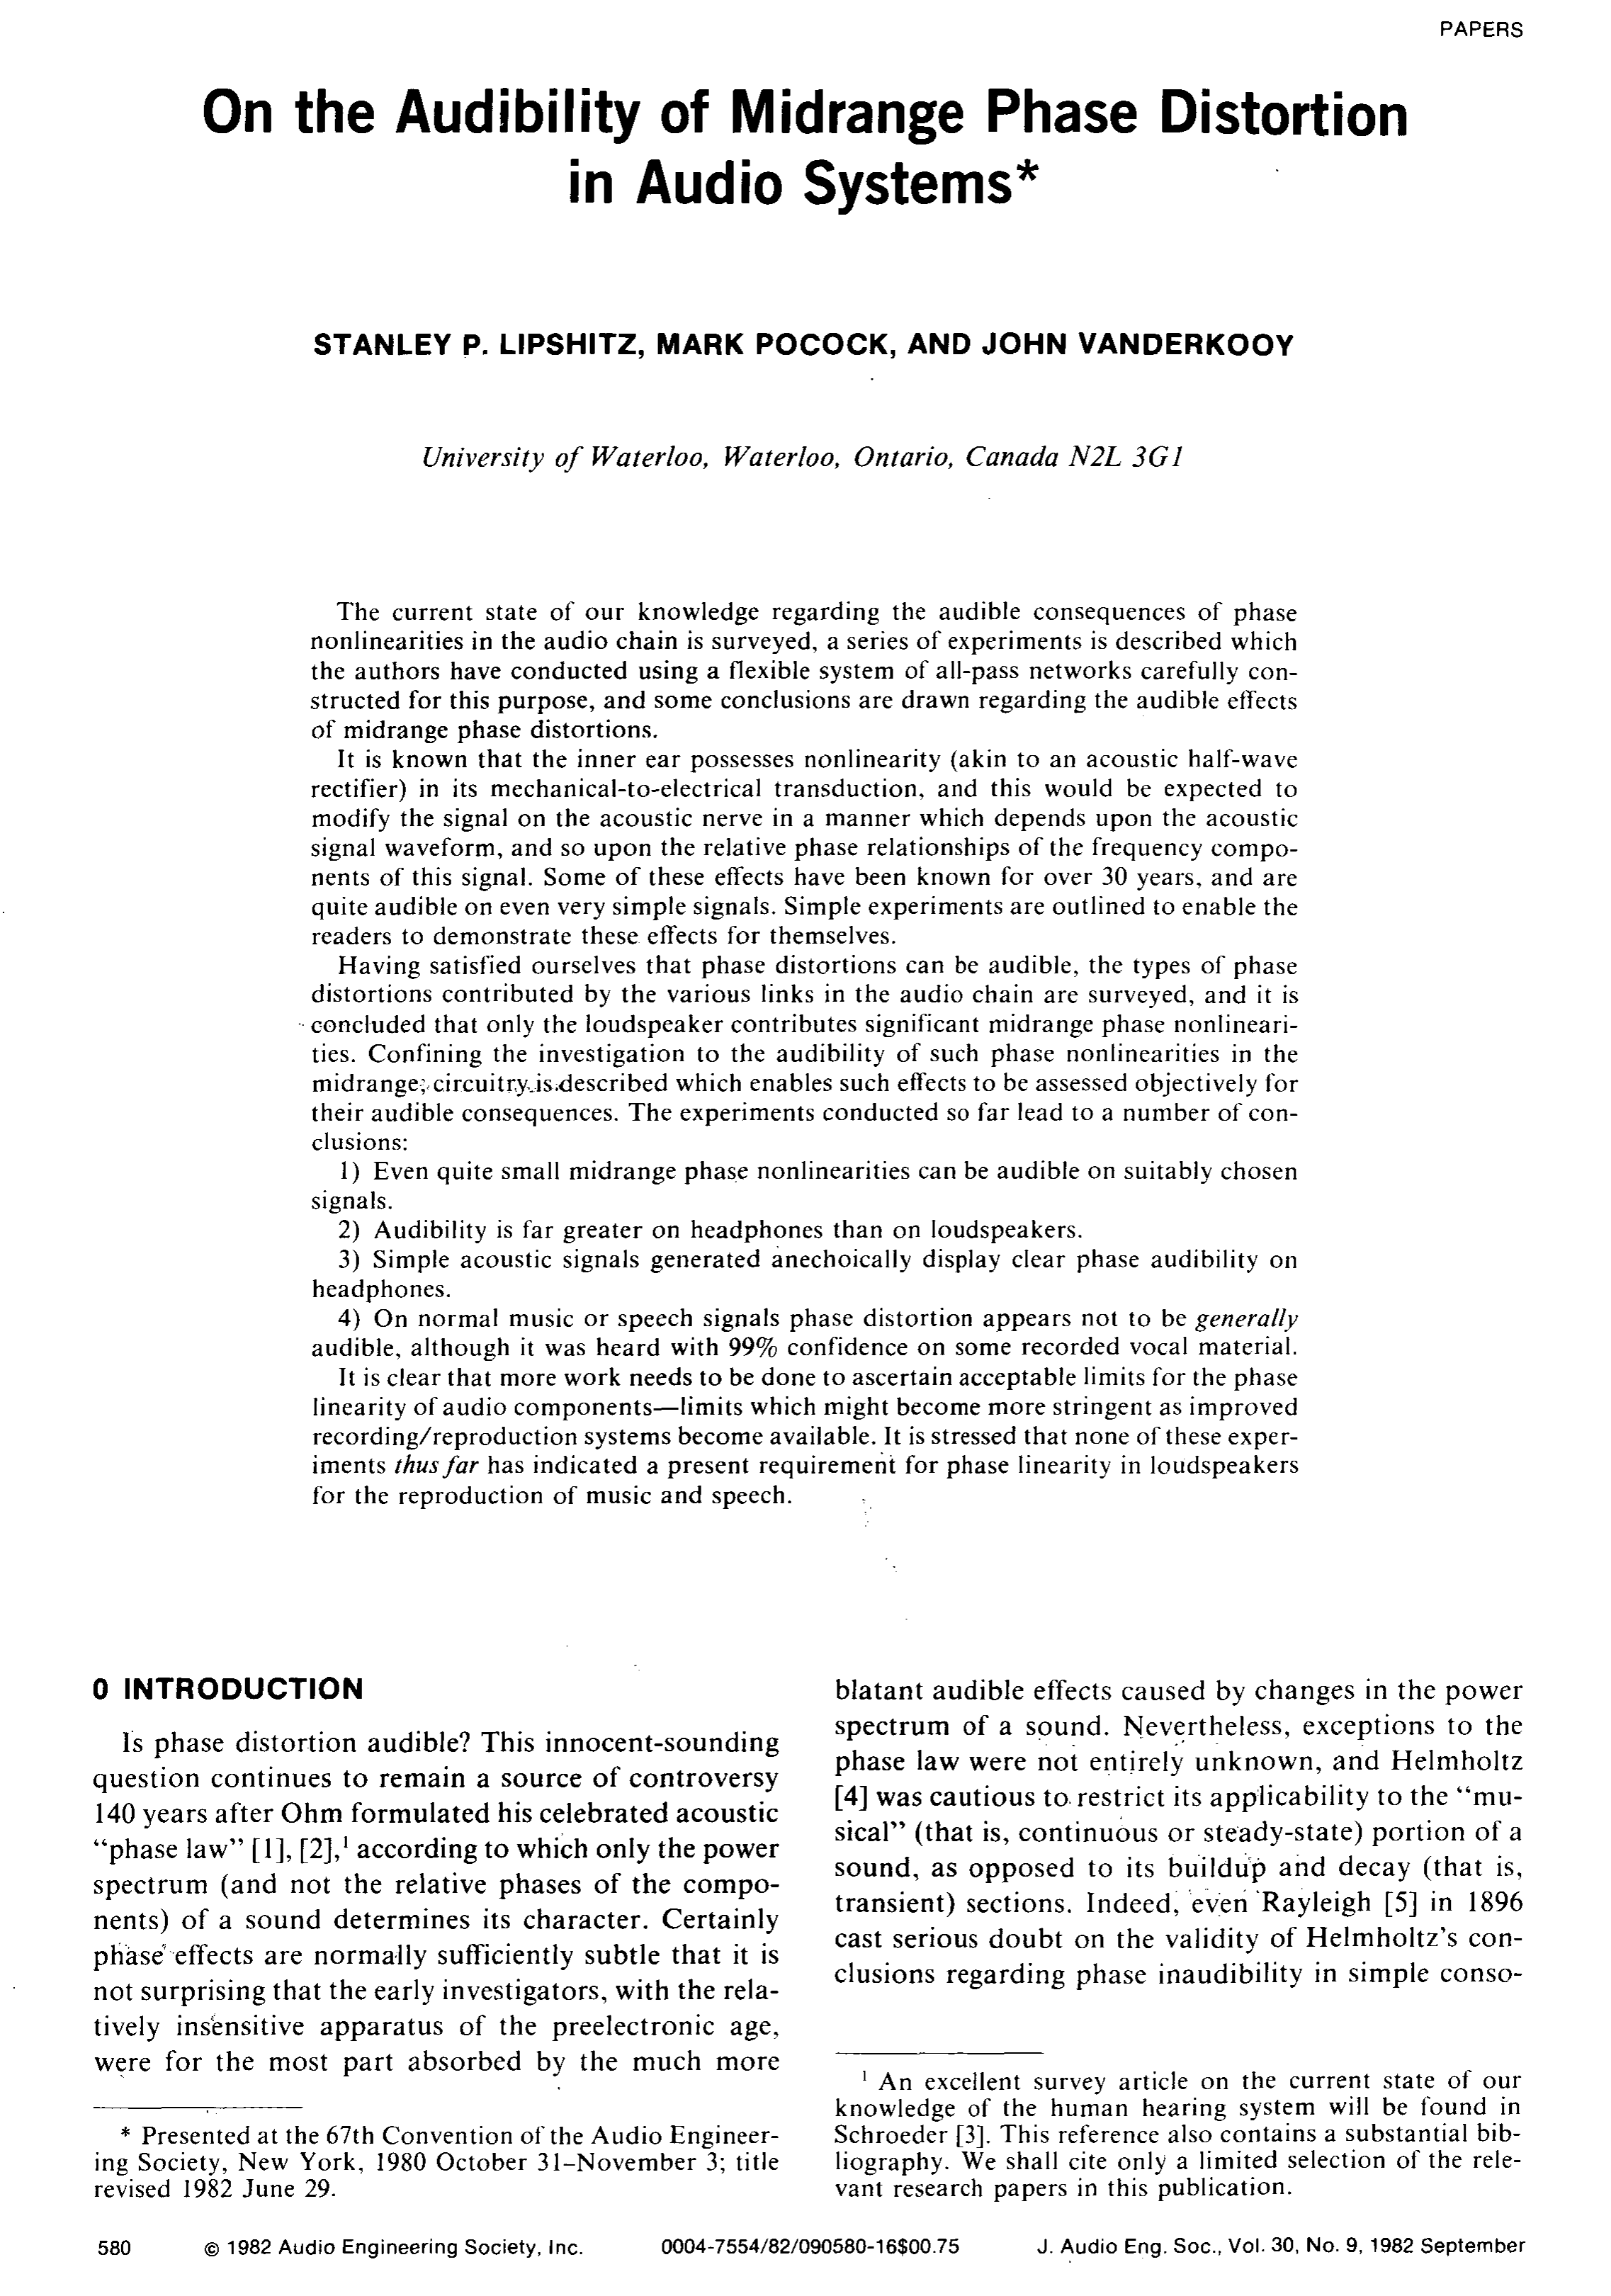 Aes E Library On The Audibility Of Midrange Phase Distortion In Audio Indicator By 741 Systems